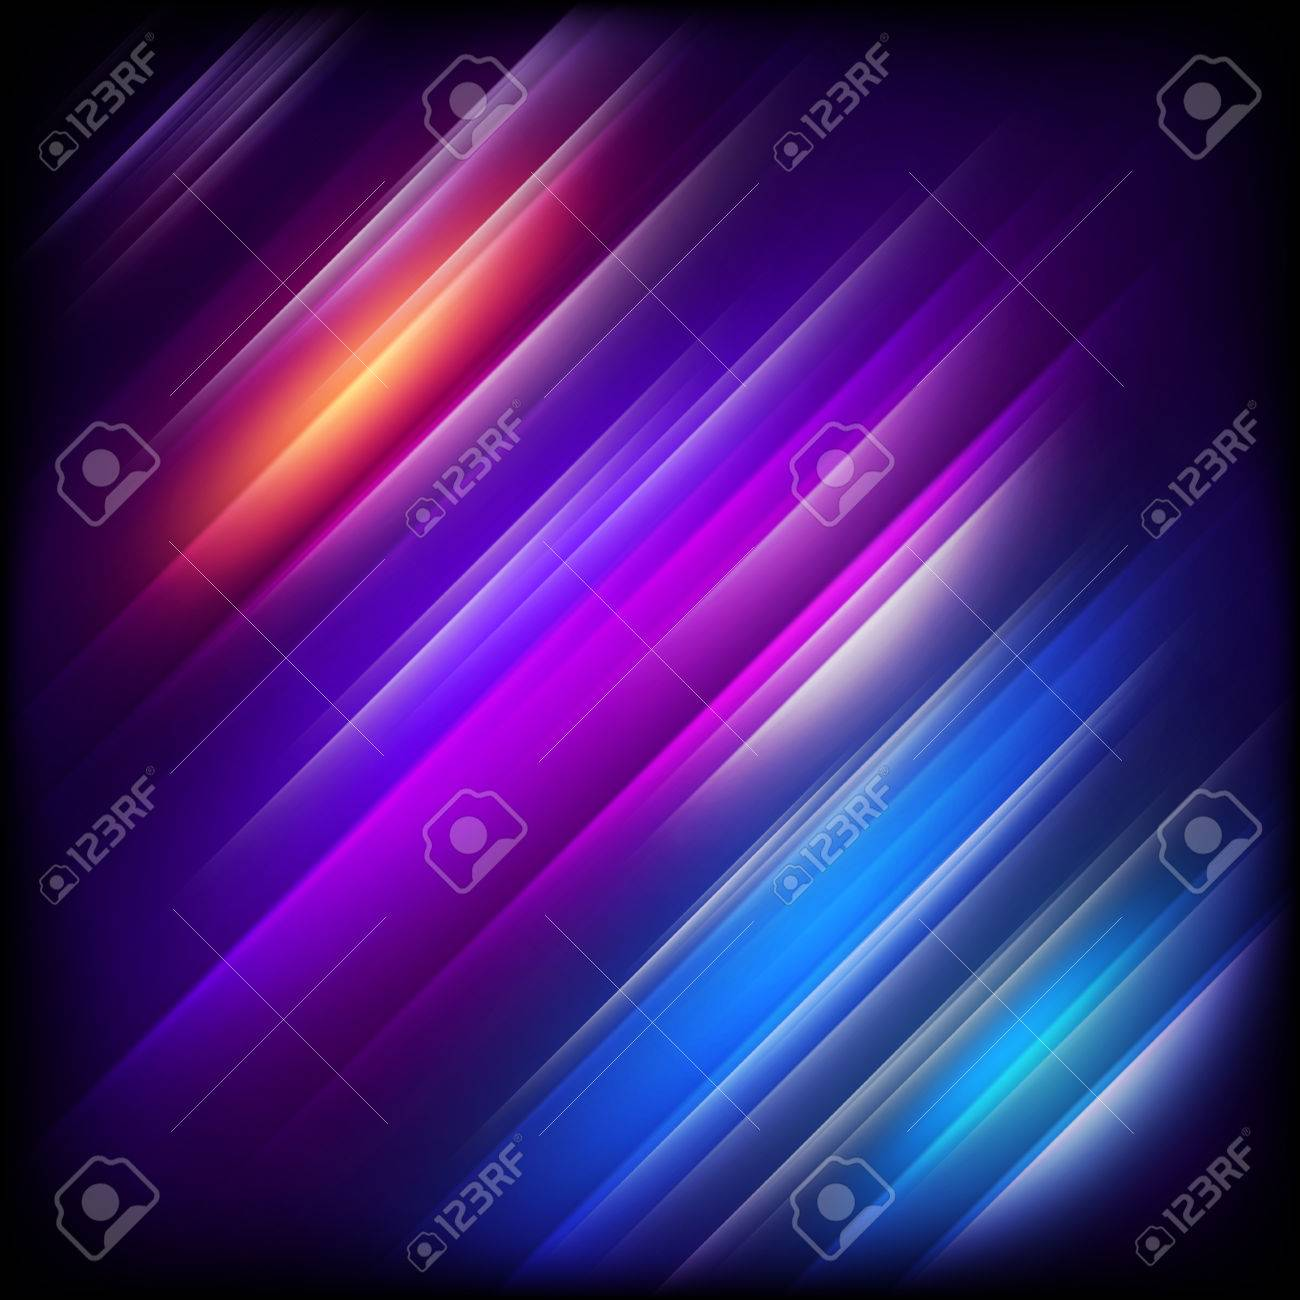 Abstract background with colorful shining. EPS 10 vector file included - 67501222